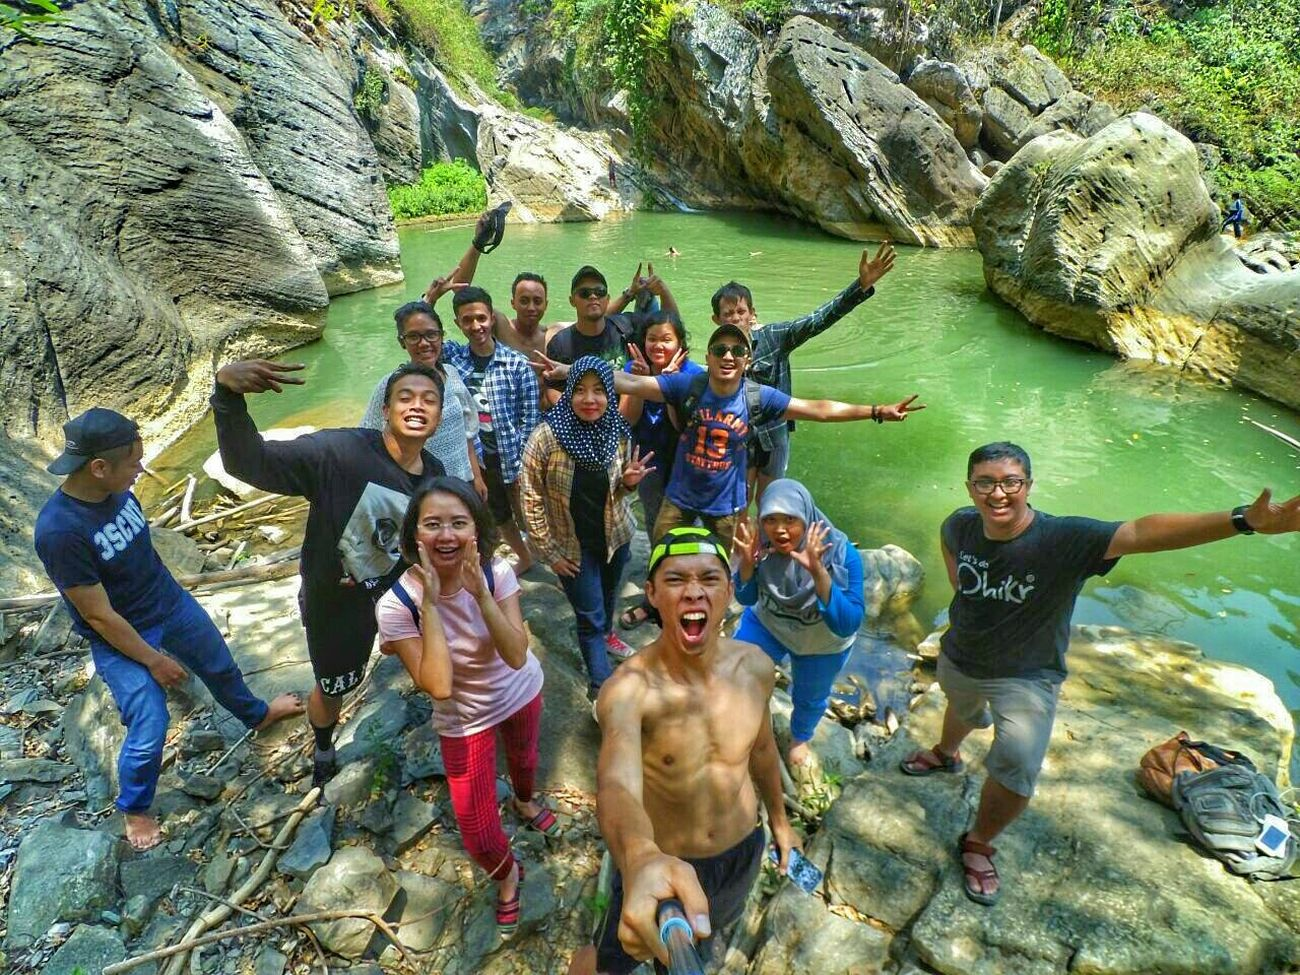 We are not Team, we are family. YESS, WE ARE JARAMBAH BANDUNG Family..